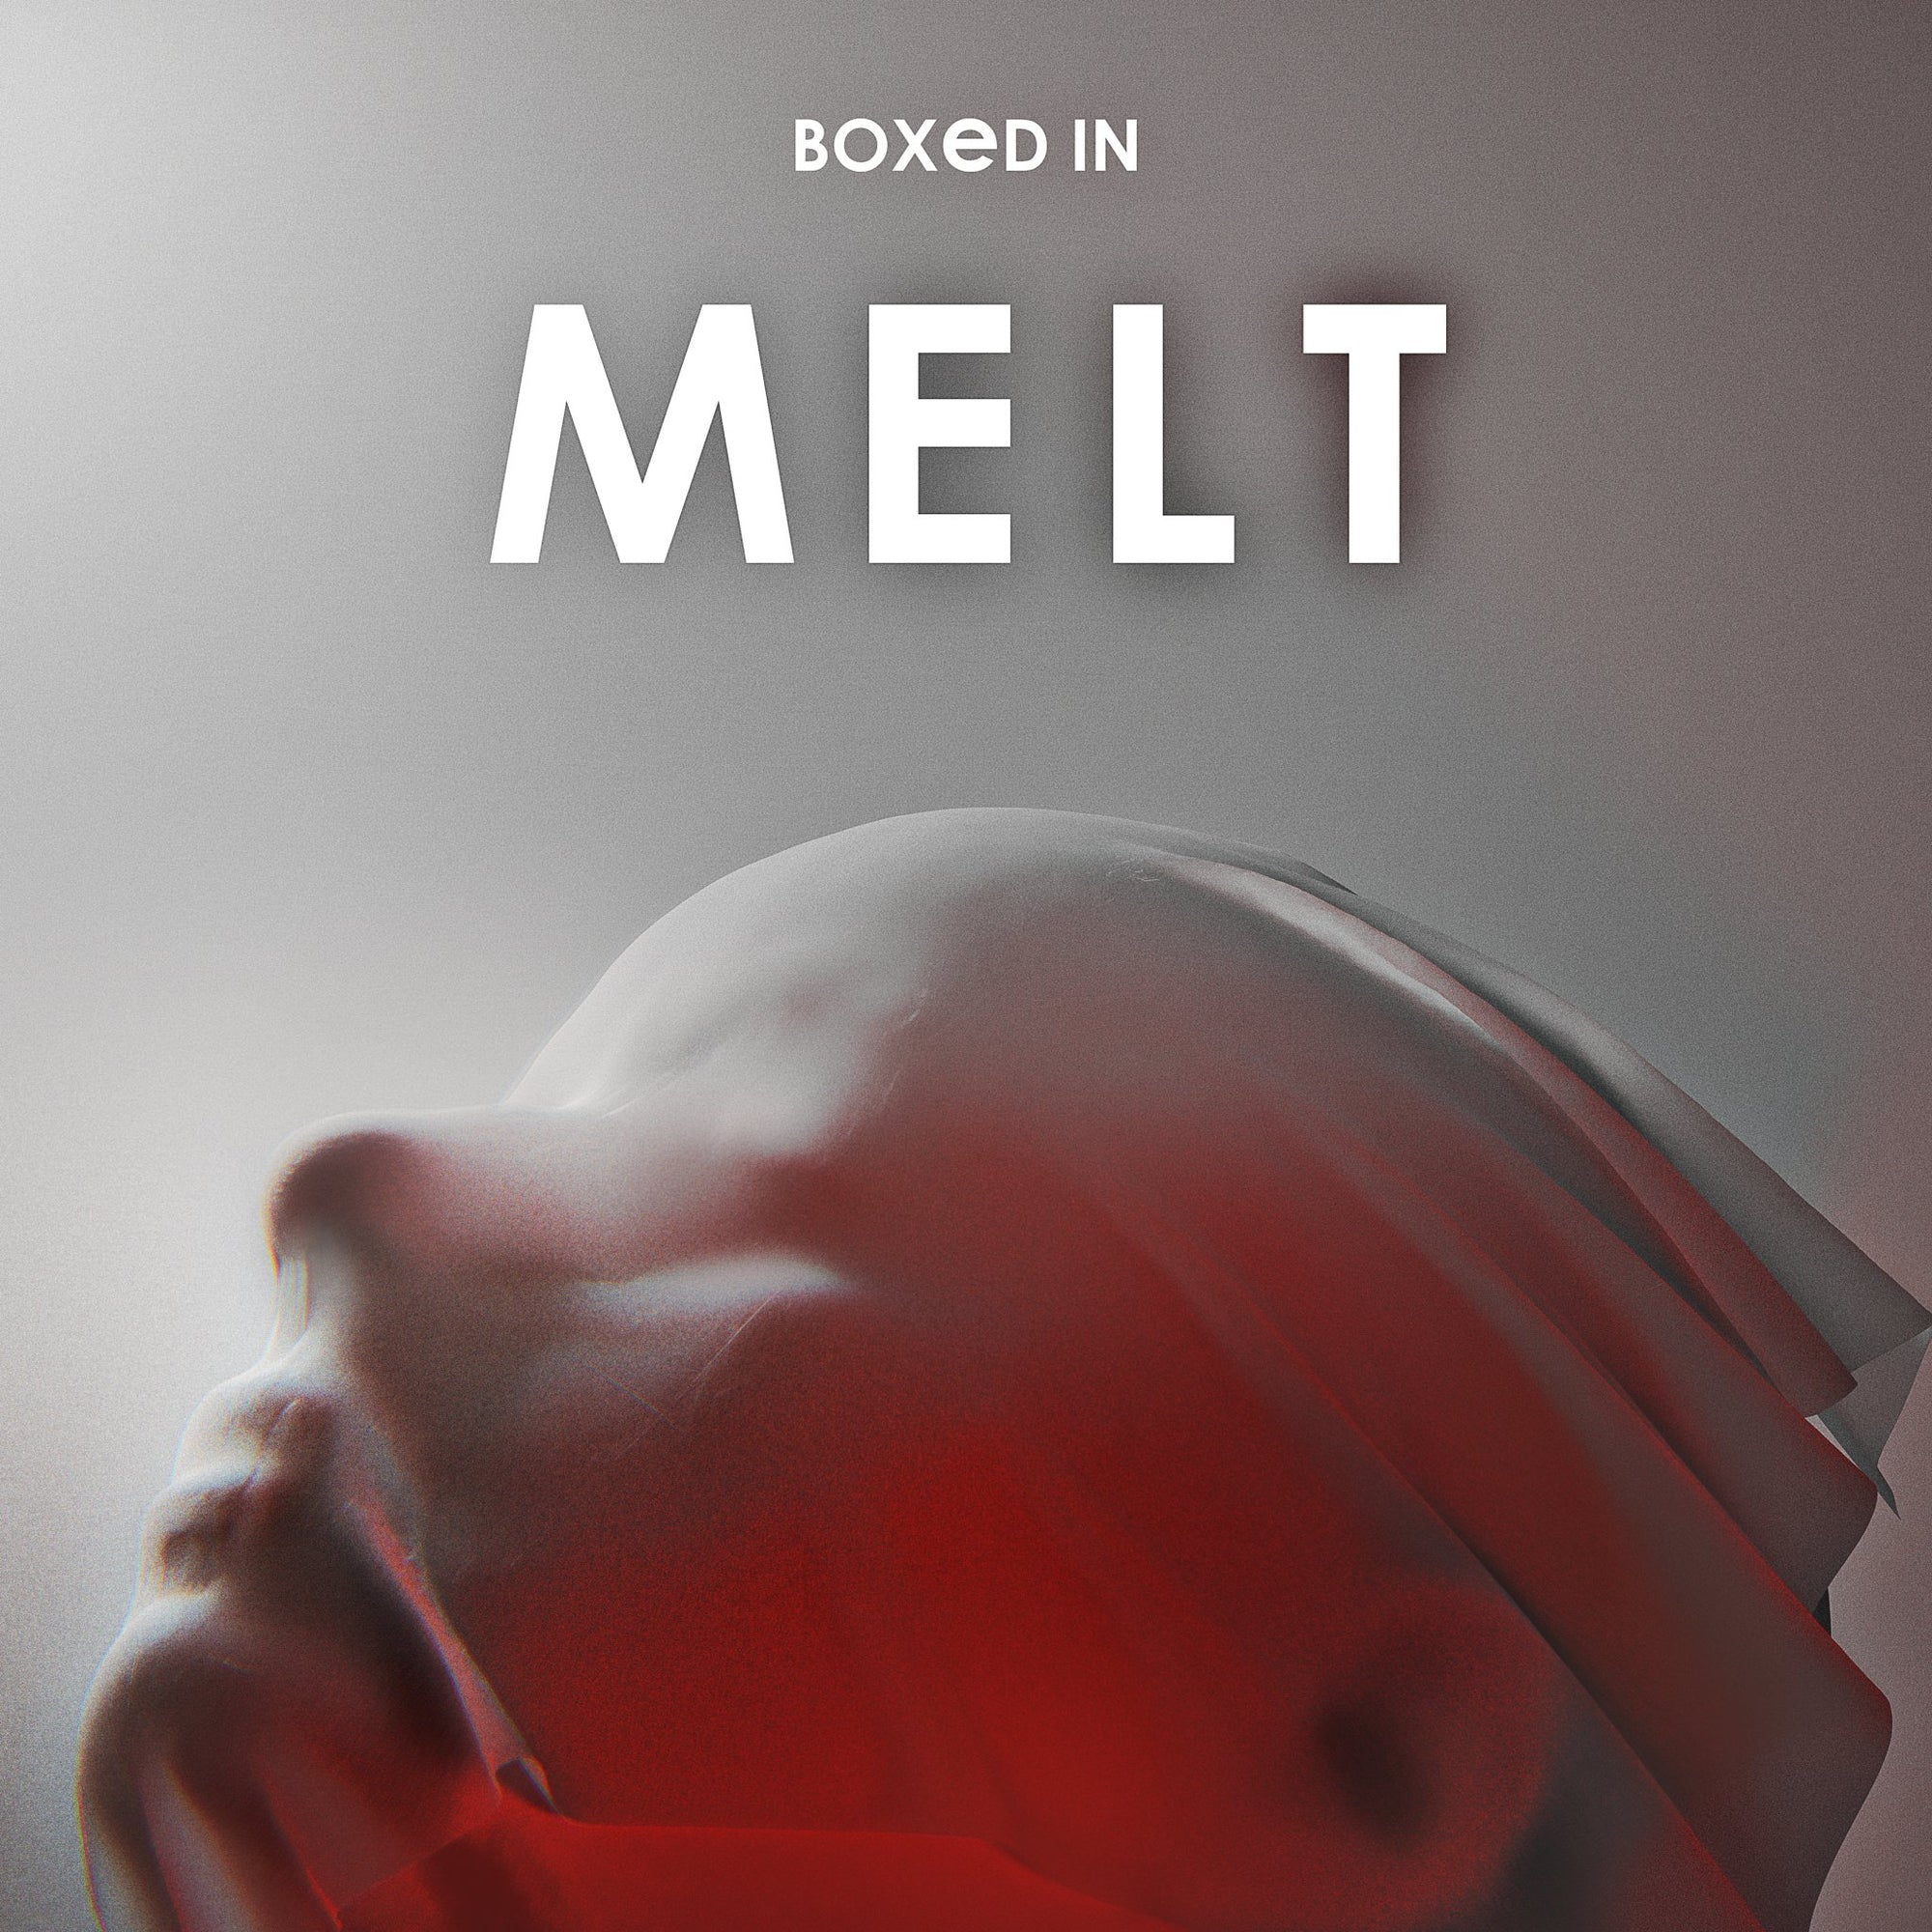 Melt [Audio CD] Boxed In